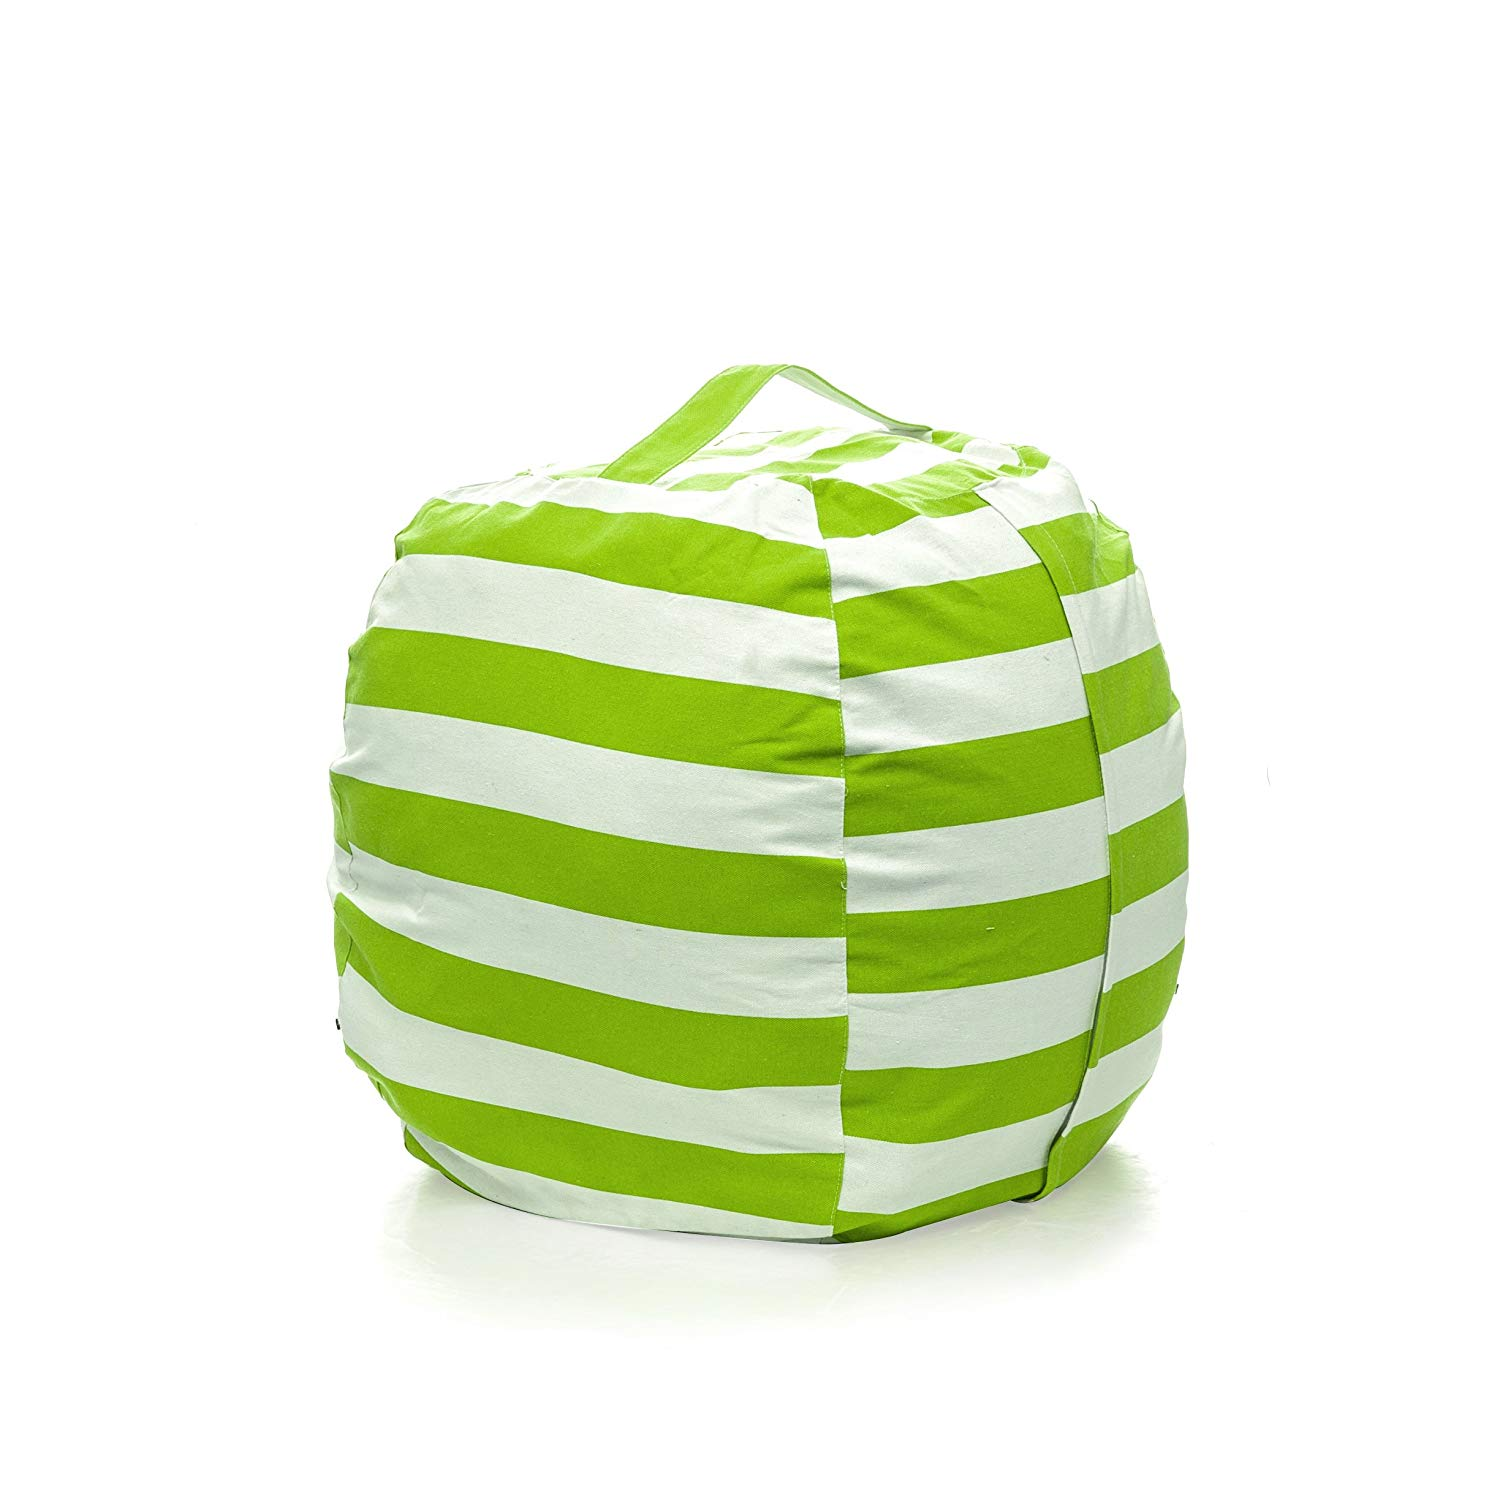 PJS-MAX Storage Bean Bag Chair for Kids - Stuffed Animal Chair Storage Bag, Jumbo Size Perfect for Soft Toys, Clothes, Blankets. 5 Colors Available (Green, Extra-large)